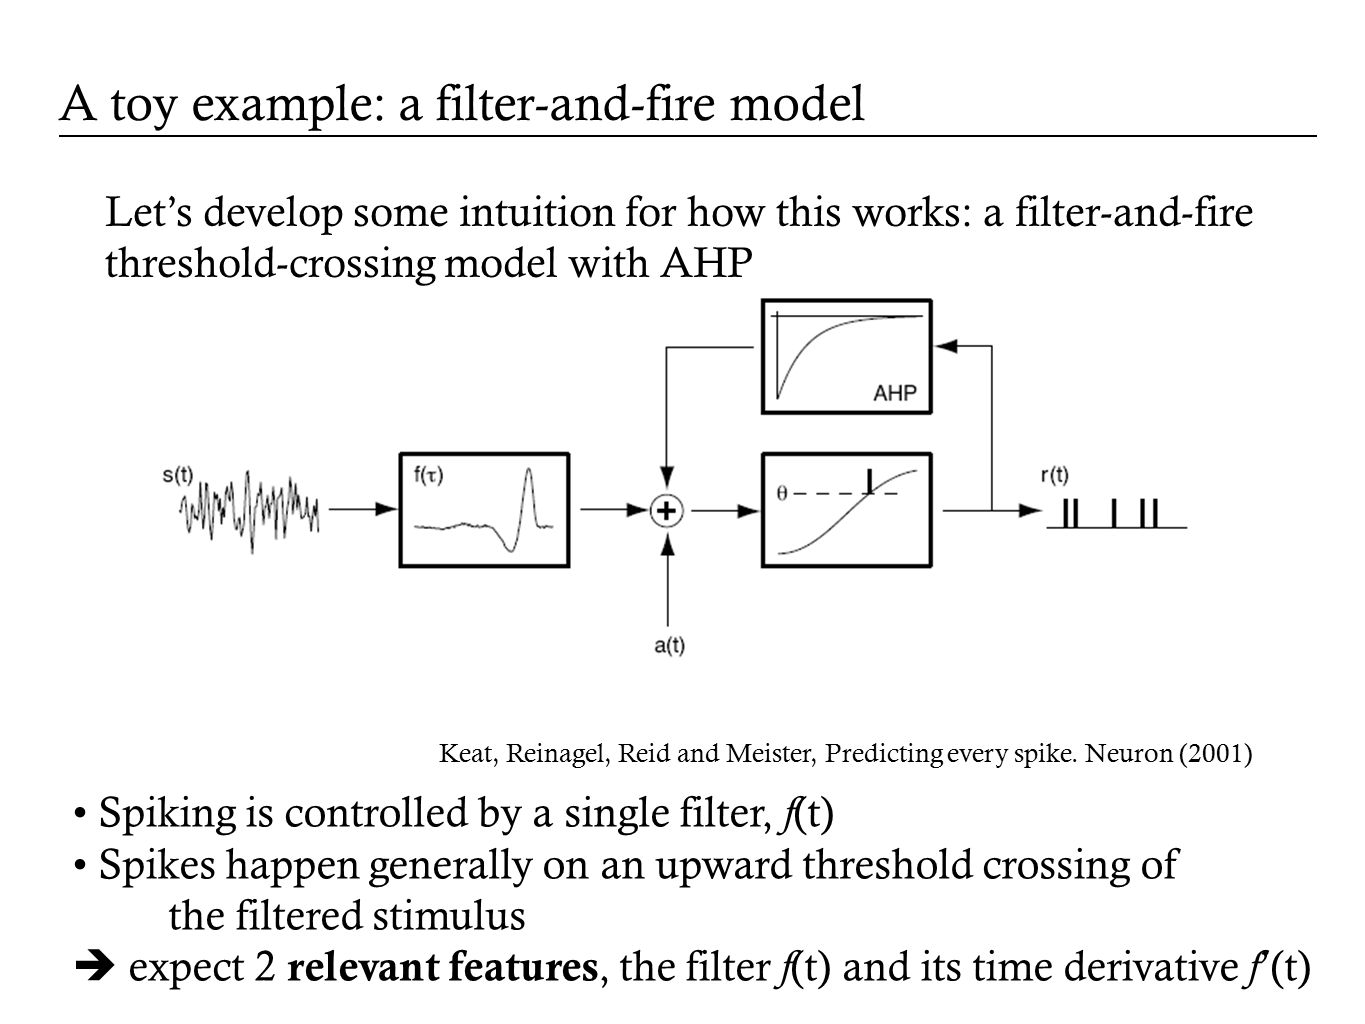 Let's develop some intuition for how this works: a filter-and-fire threshold-crossing model with AHP Keat, Reinagel, Reid and Meister, Predicting ever